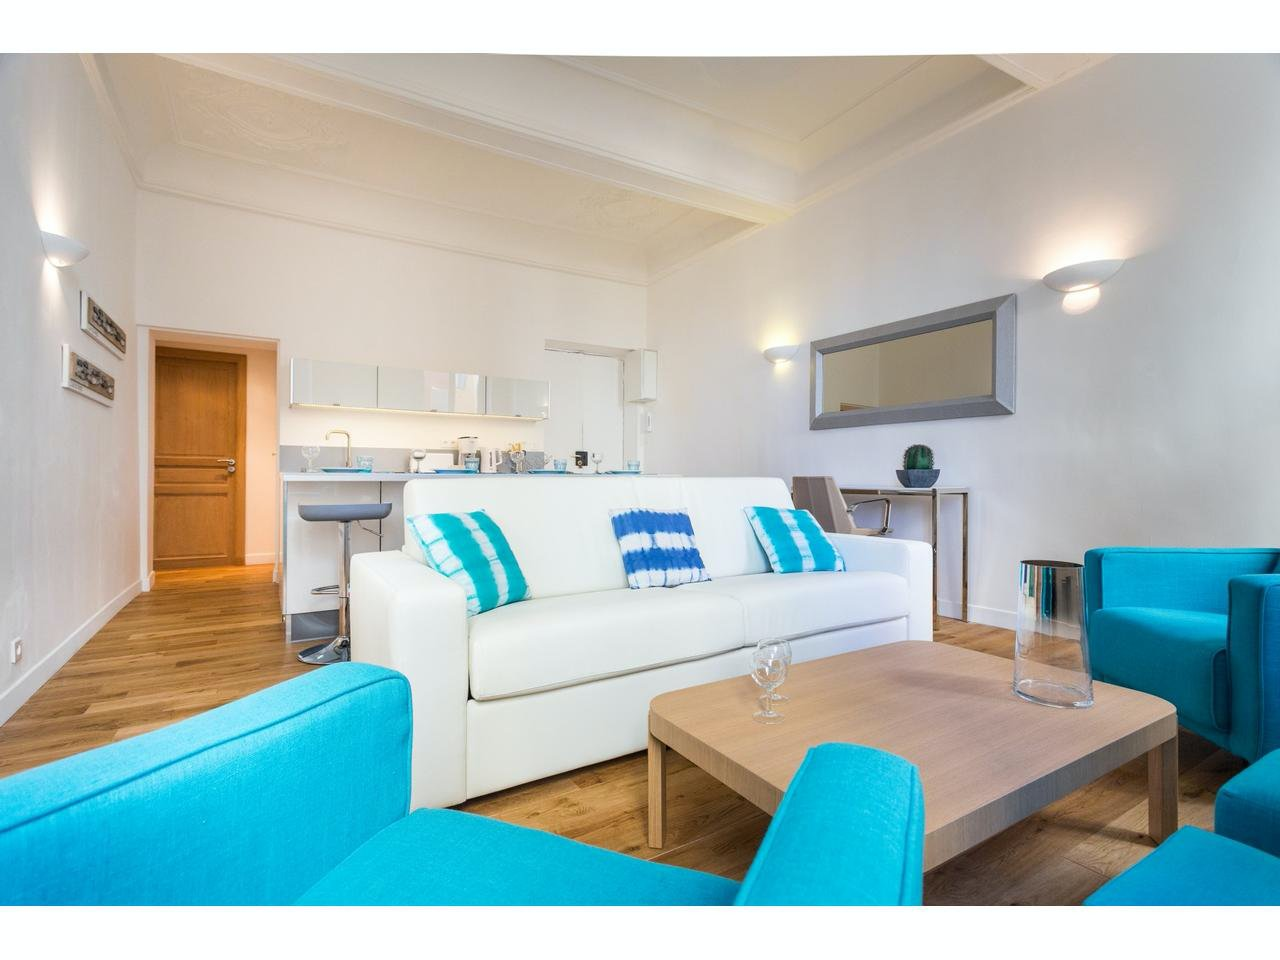 2 bedroom apartment in old city of Nice